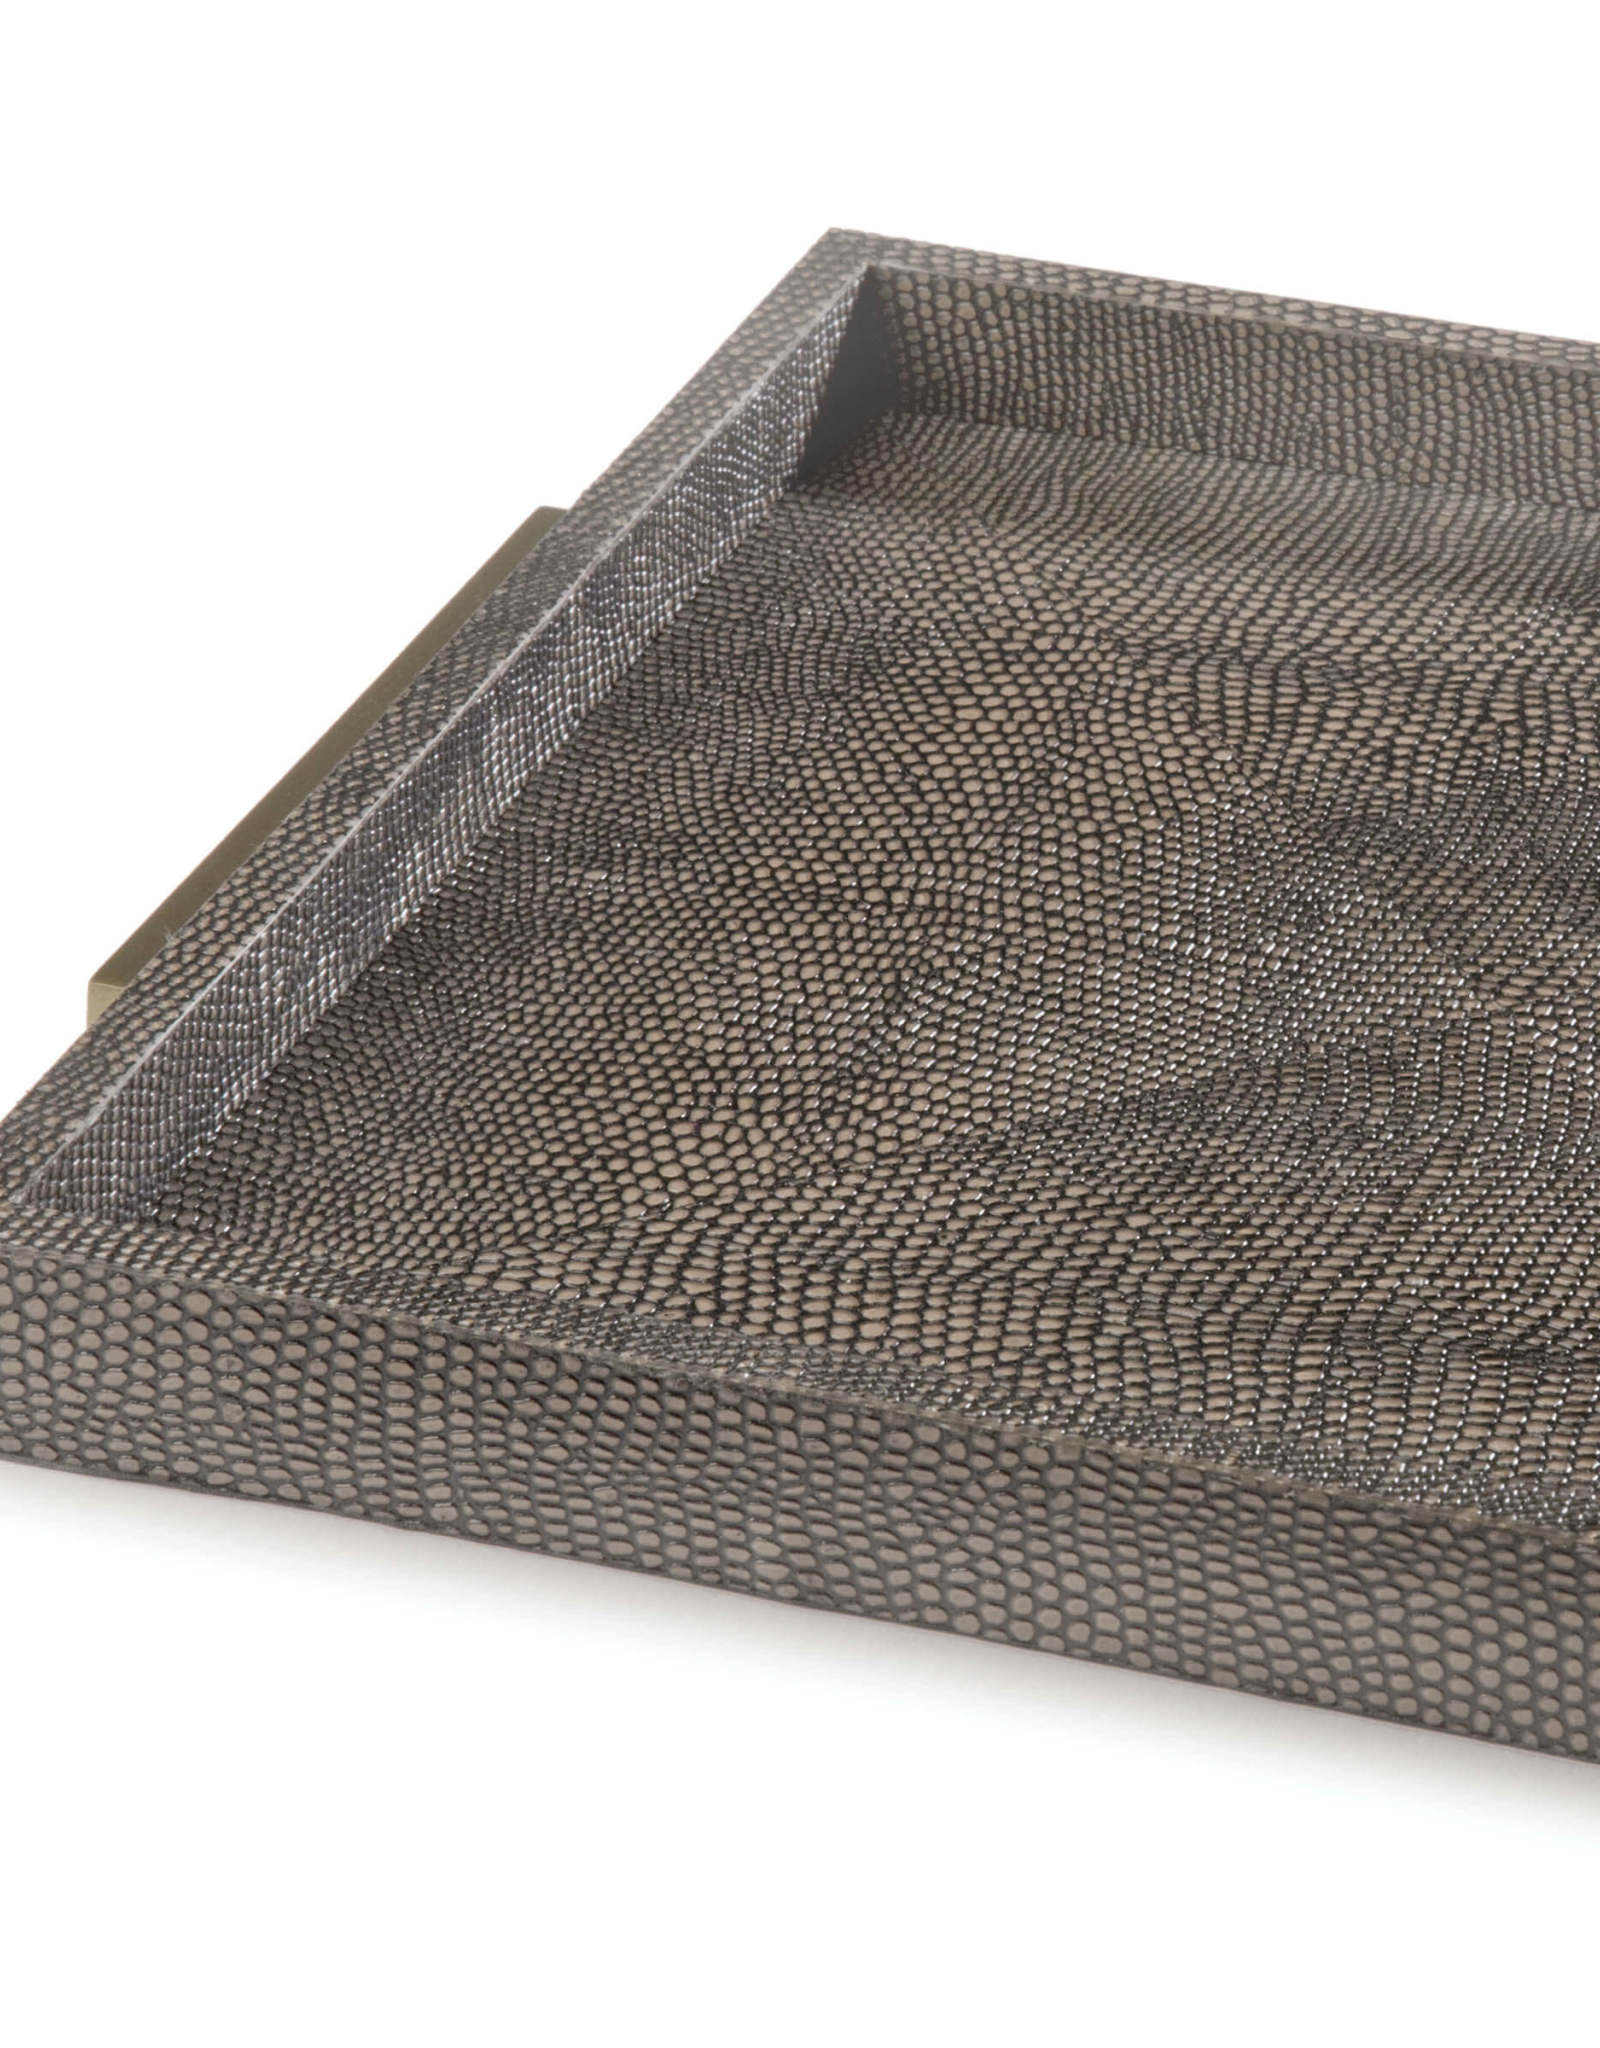 Regina Andrew Design Square Shagreen Boutique Tray (Vintage Brown Snake)